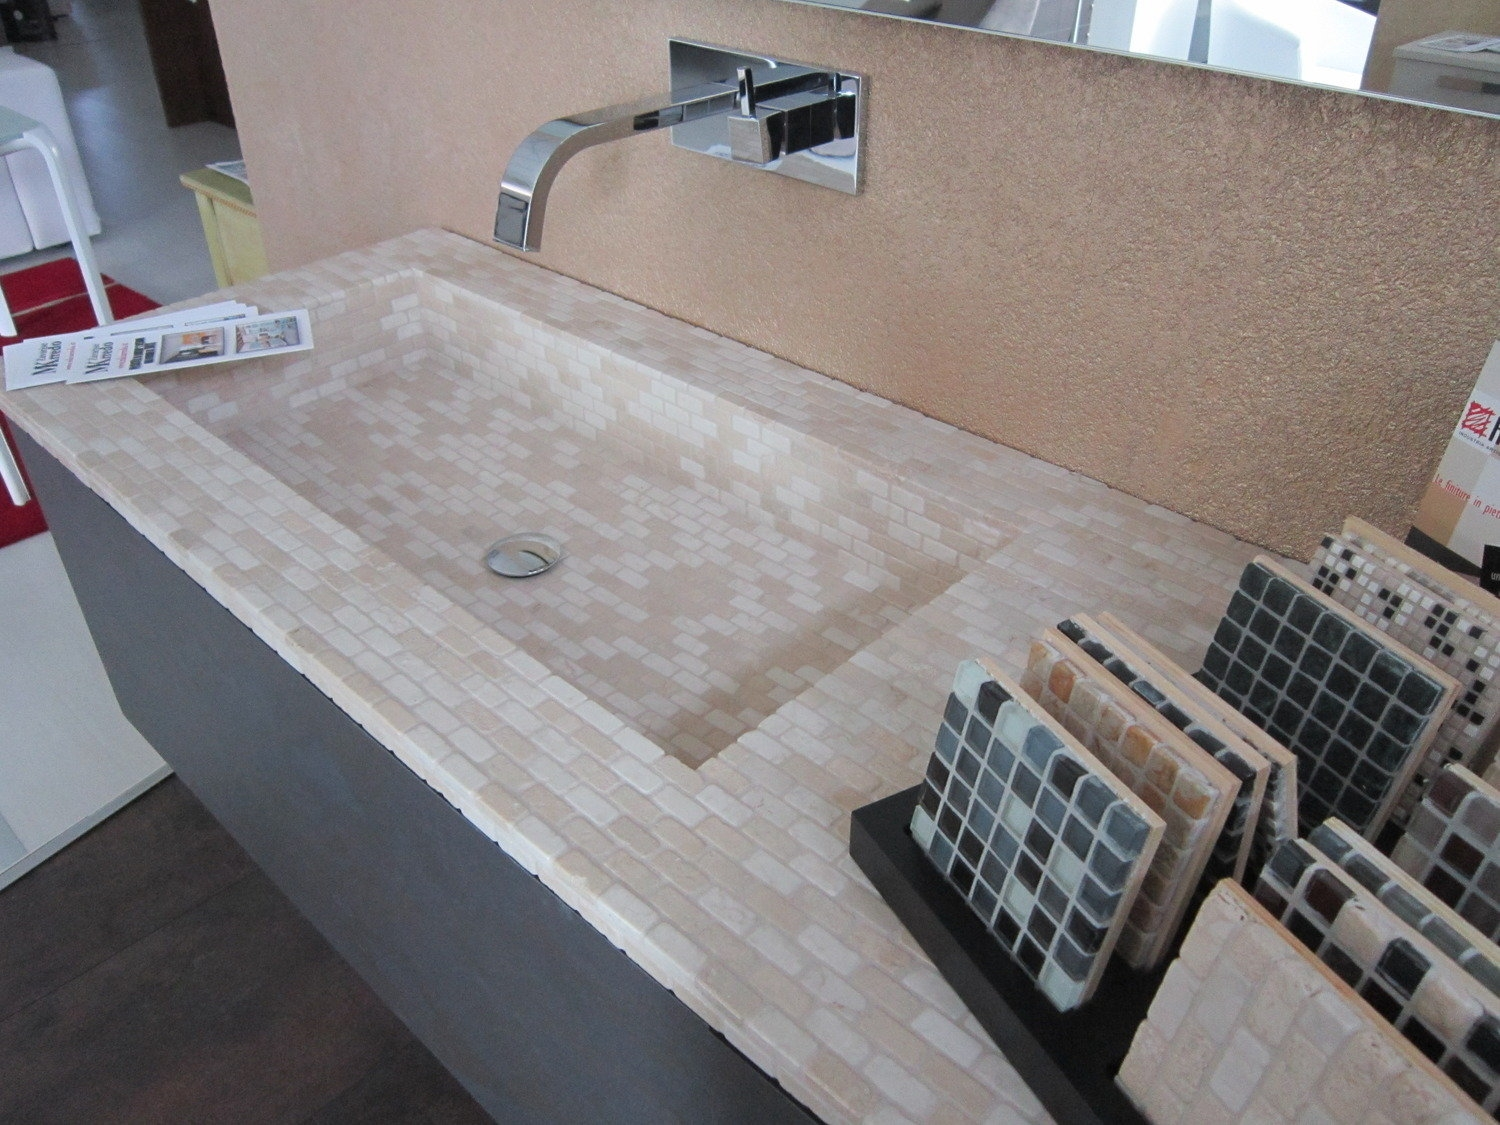 Bagno moderno in mosaico ~ avienix.com for .